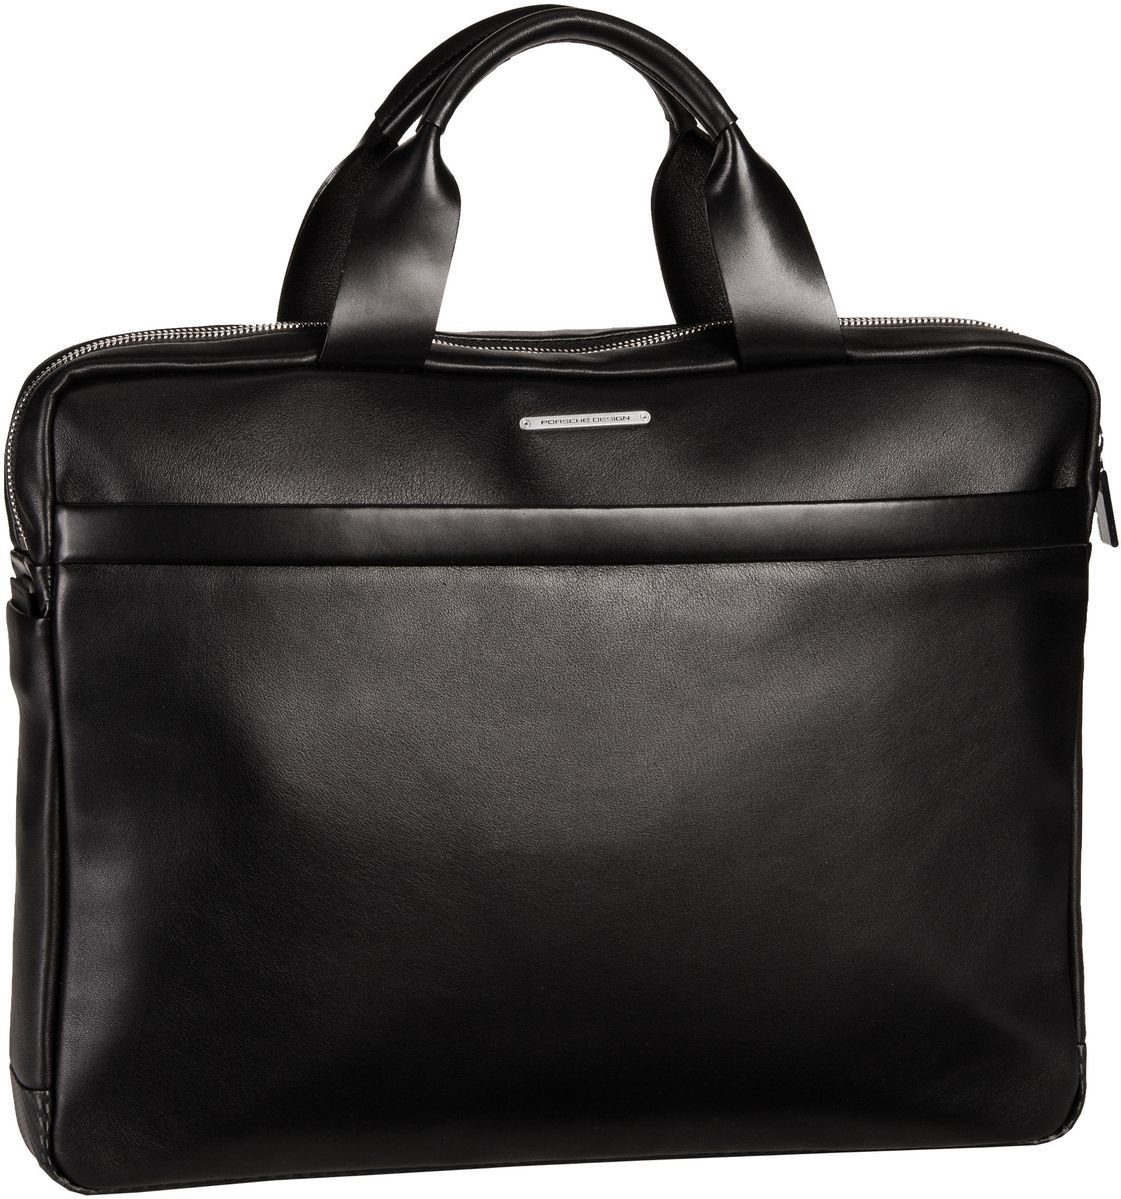 PORSCHE Design Notebooktasche / Tablet »CL2 2.0 Notebookbag«